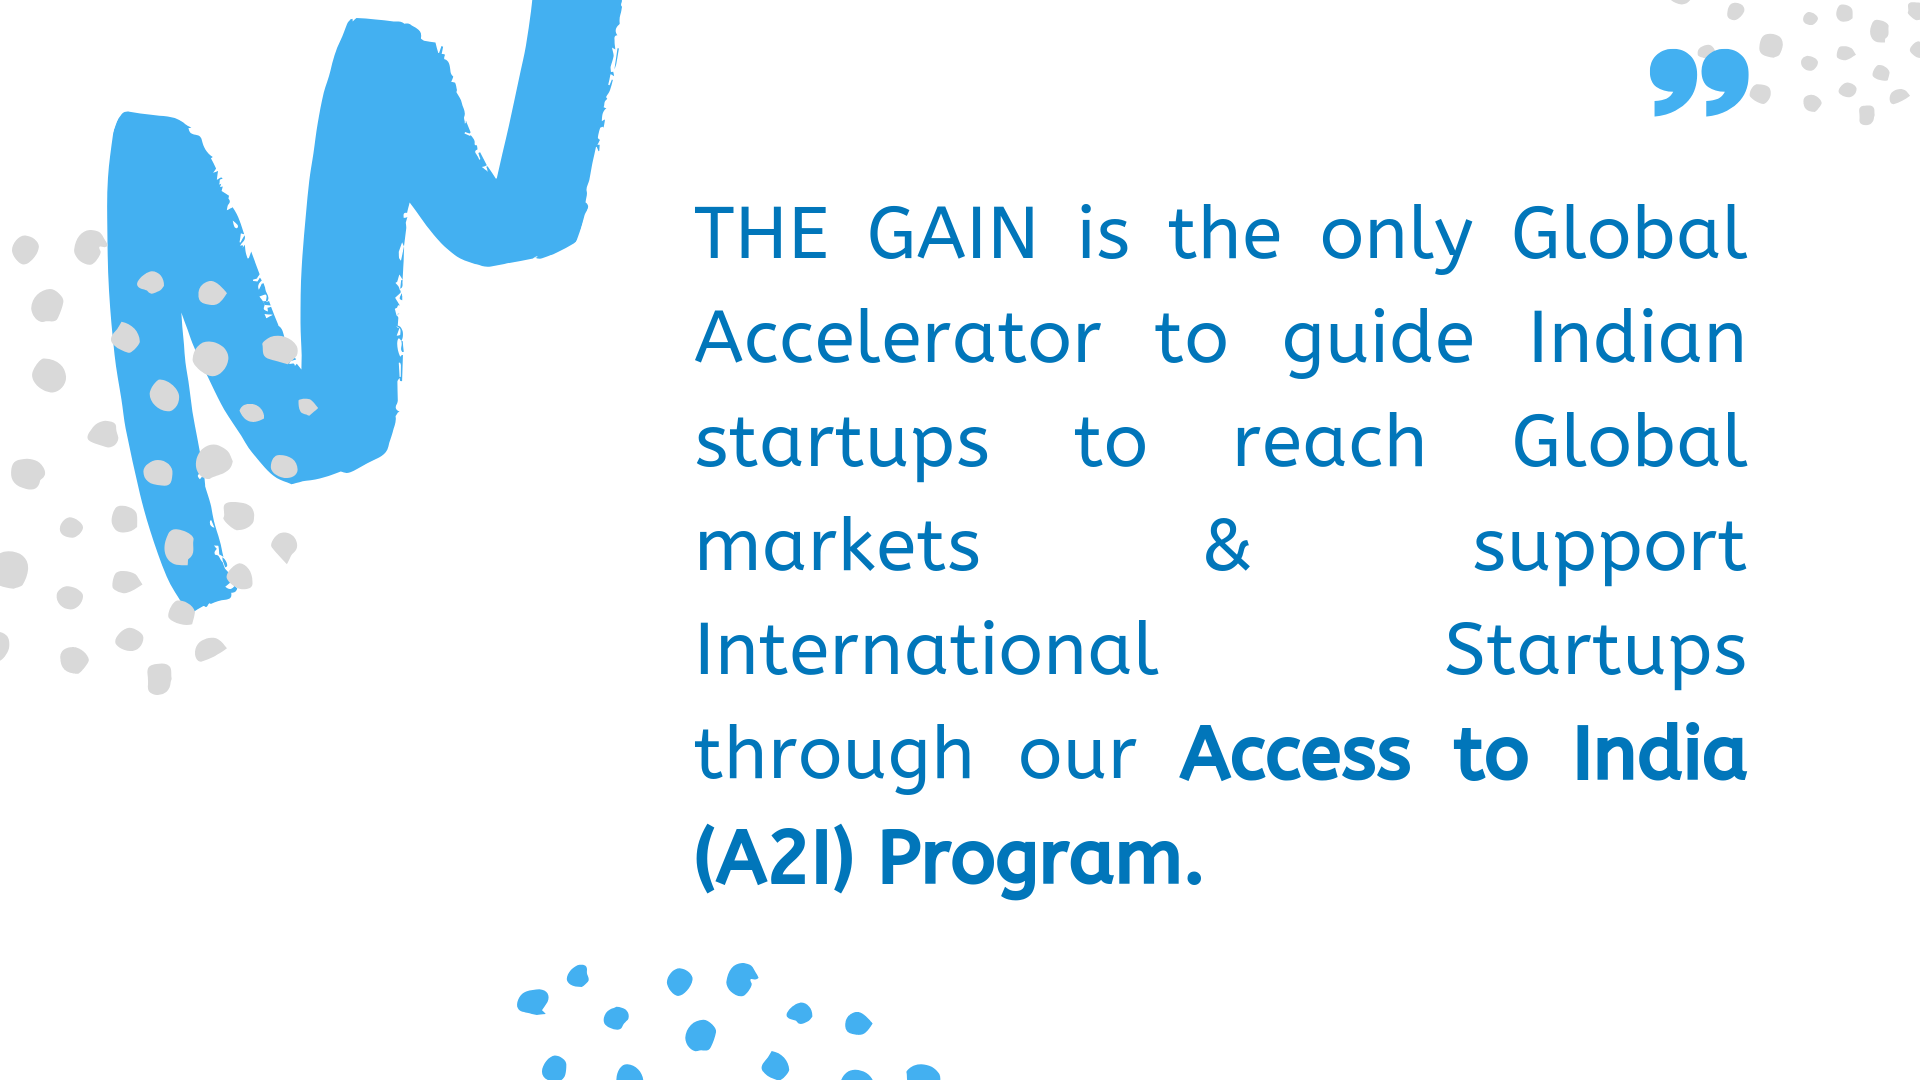 THE GAIN is the only Global Accelerator to guide Indian startups to reach Global markets & support International Startups through our Access to India (A2I) Program. (4).png